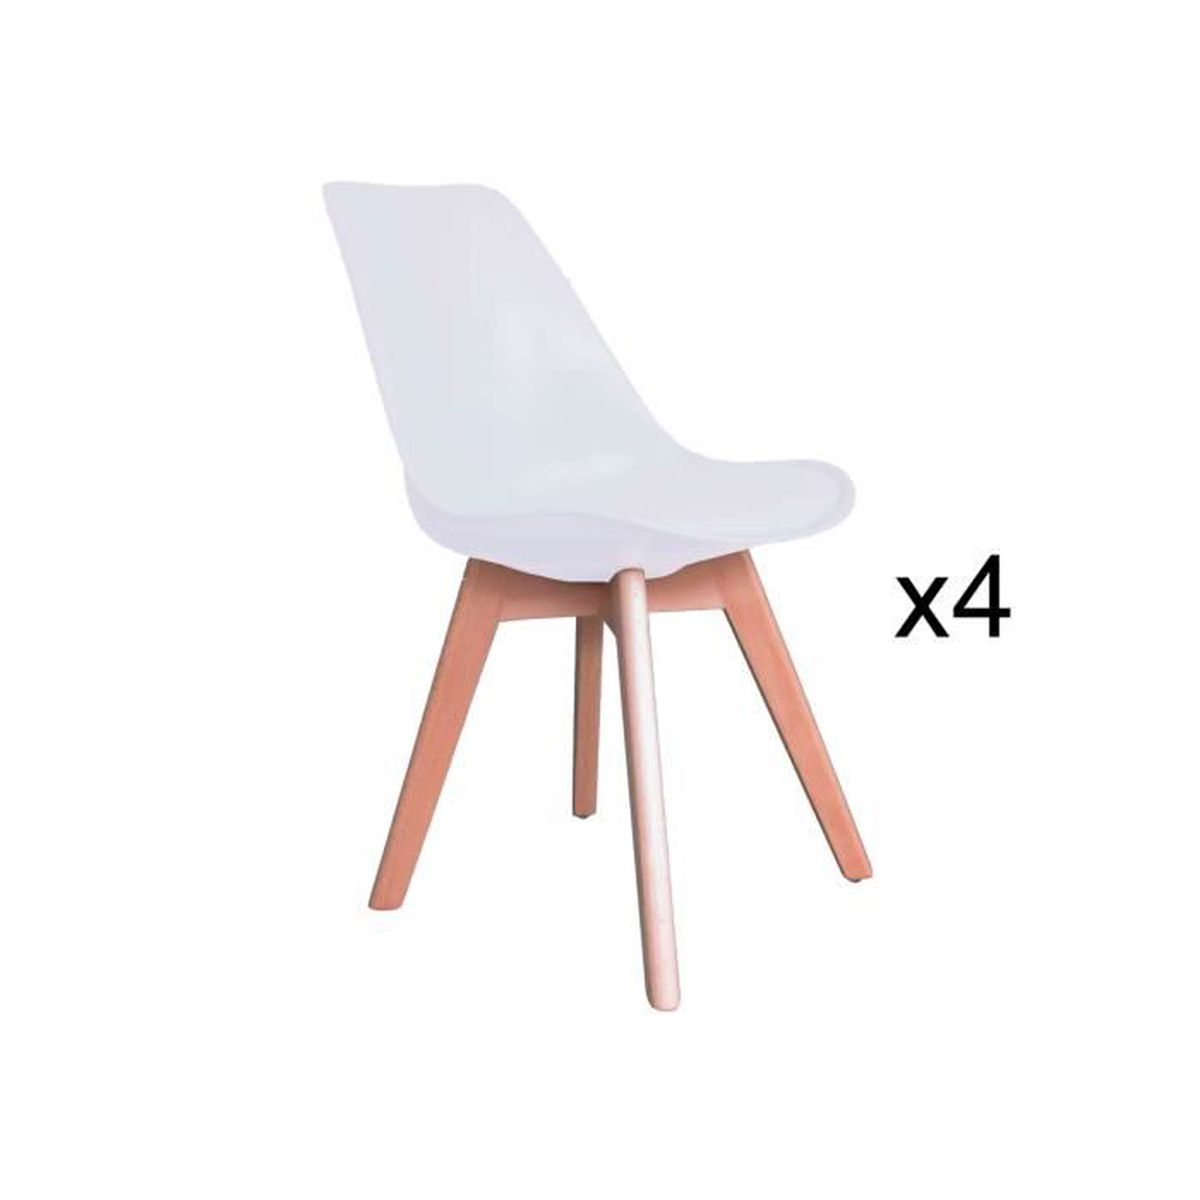 lot de 4 chaises scandinave blanc pies en bois achat vente chaise blanc soldes d t. Black Bedroom Furniture Sets. Home Design Ideas